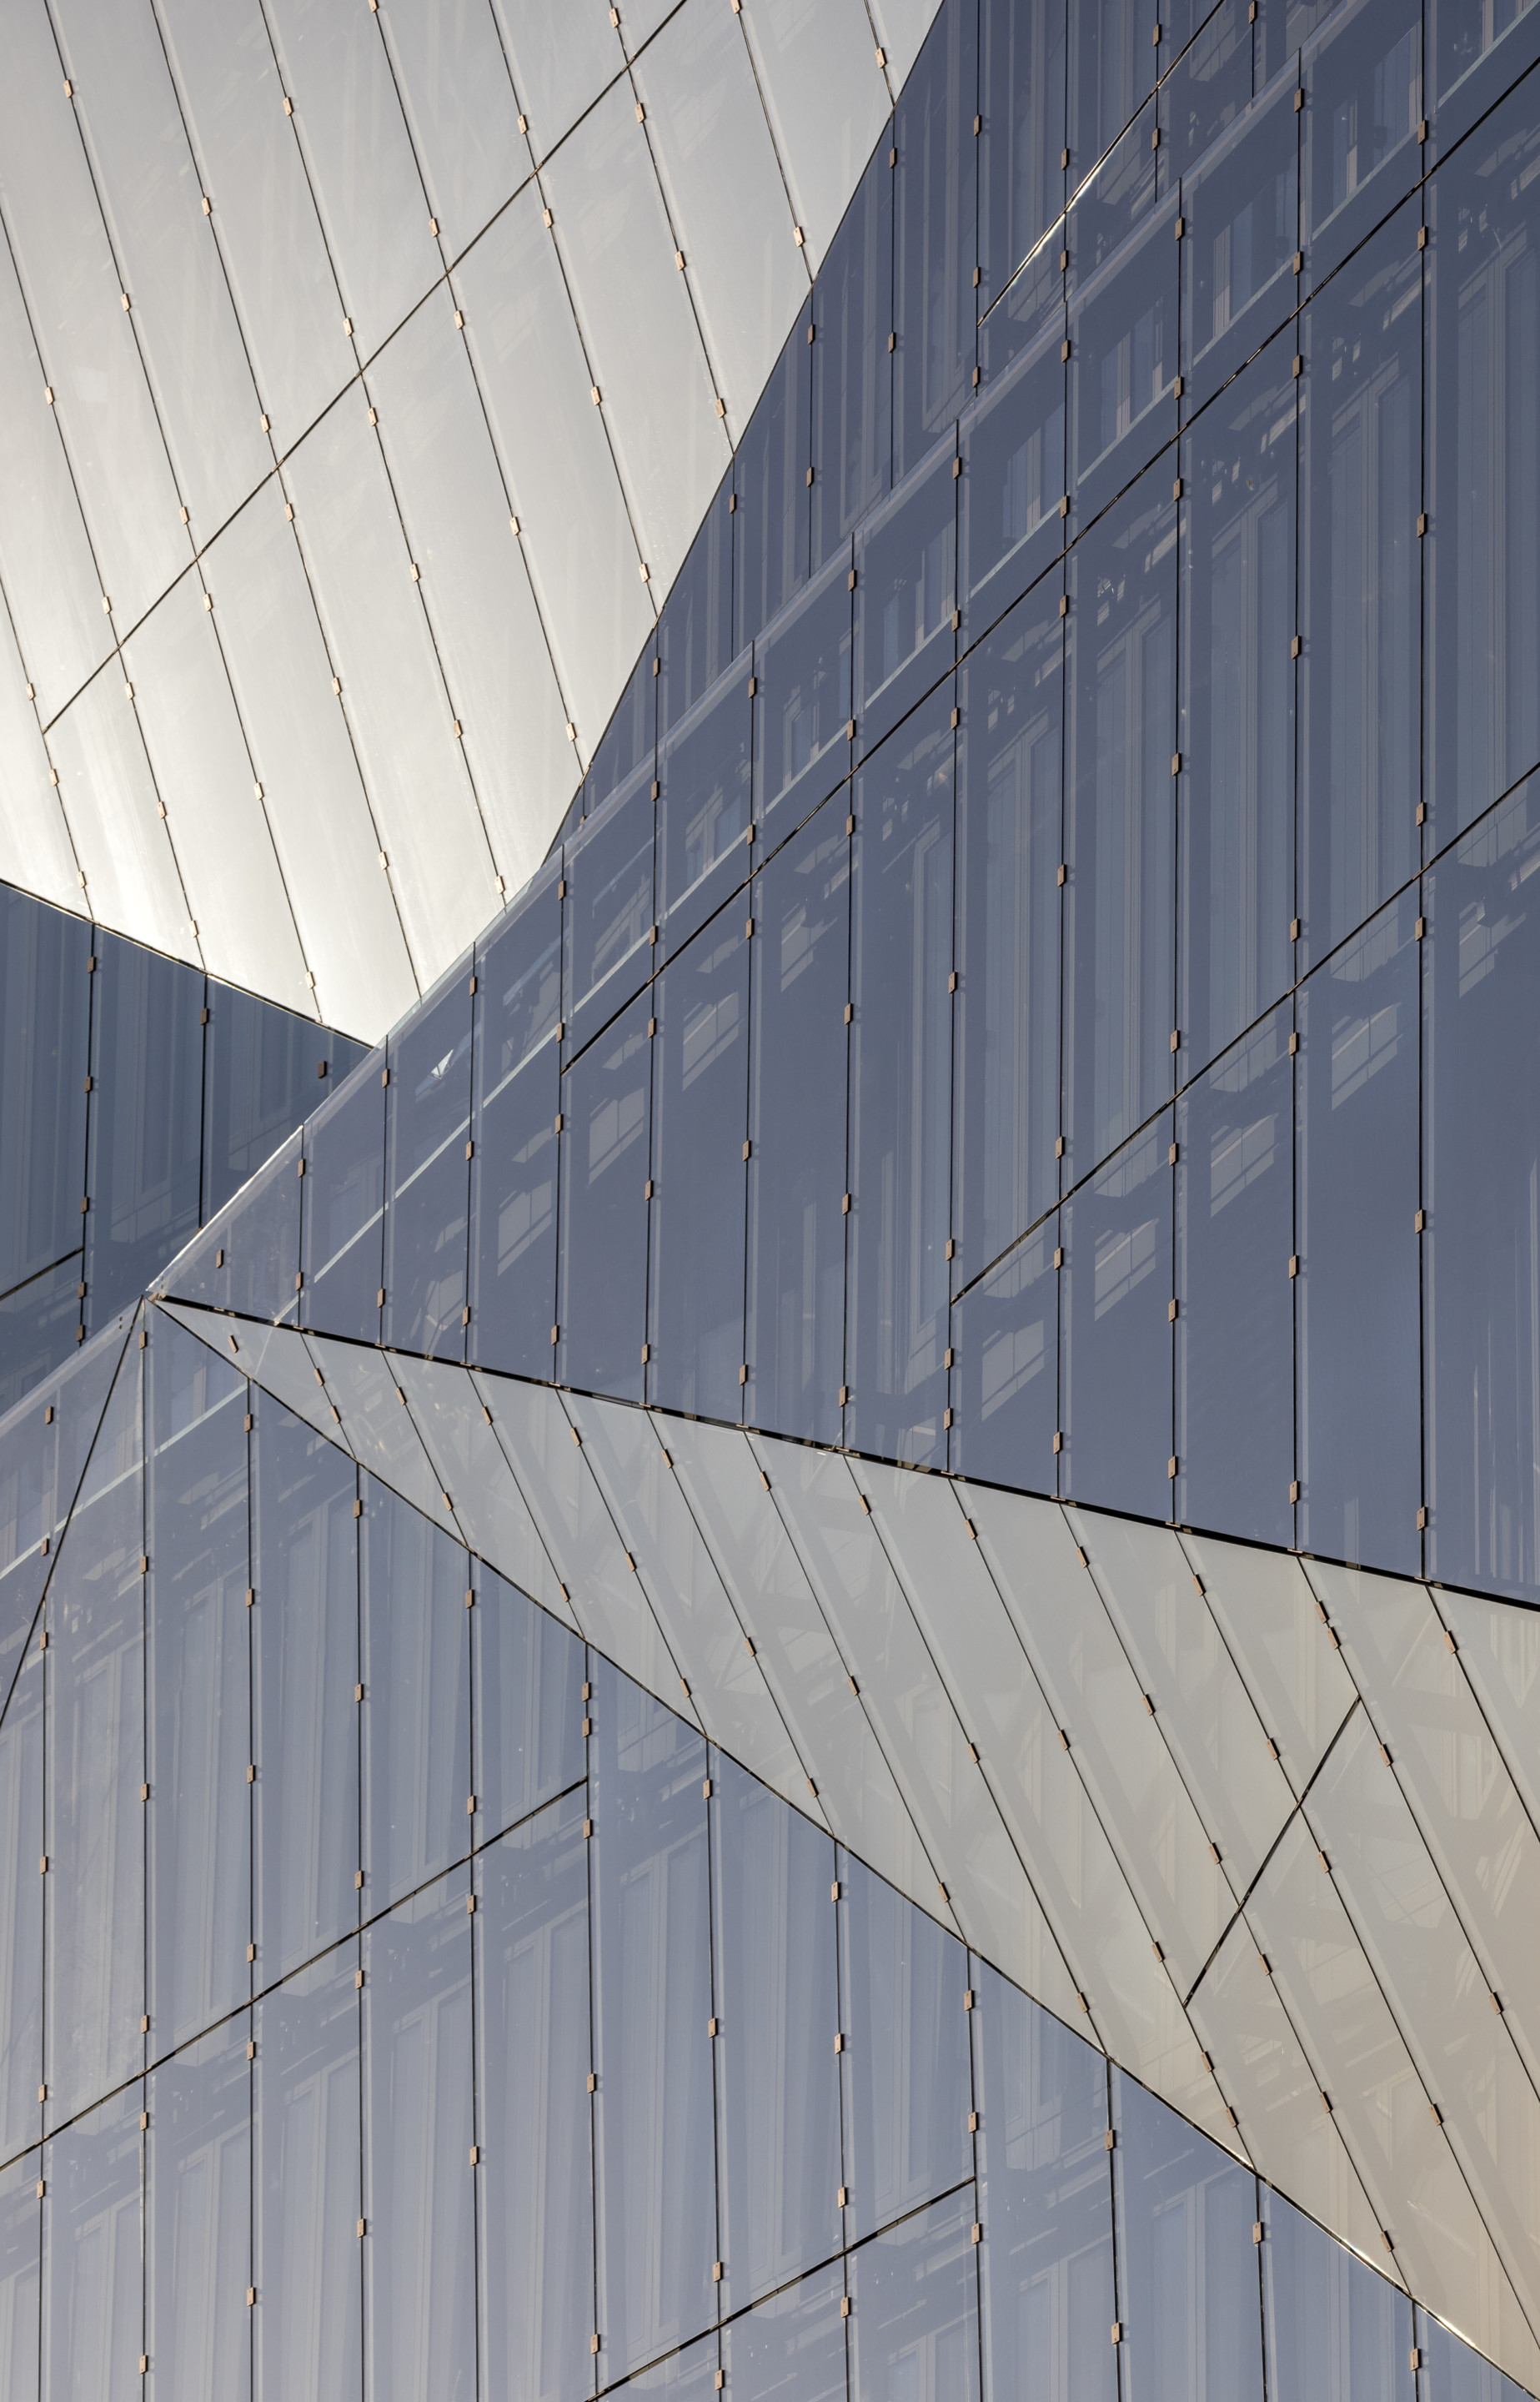 Detail image of the cube berlin facade